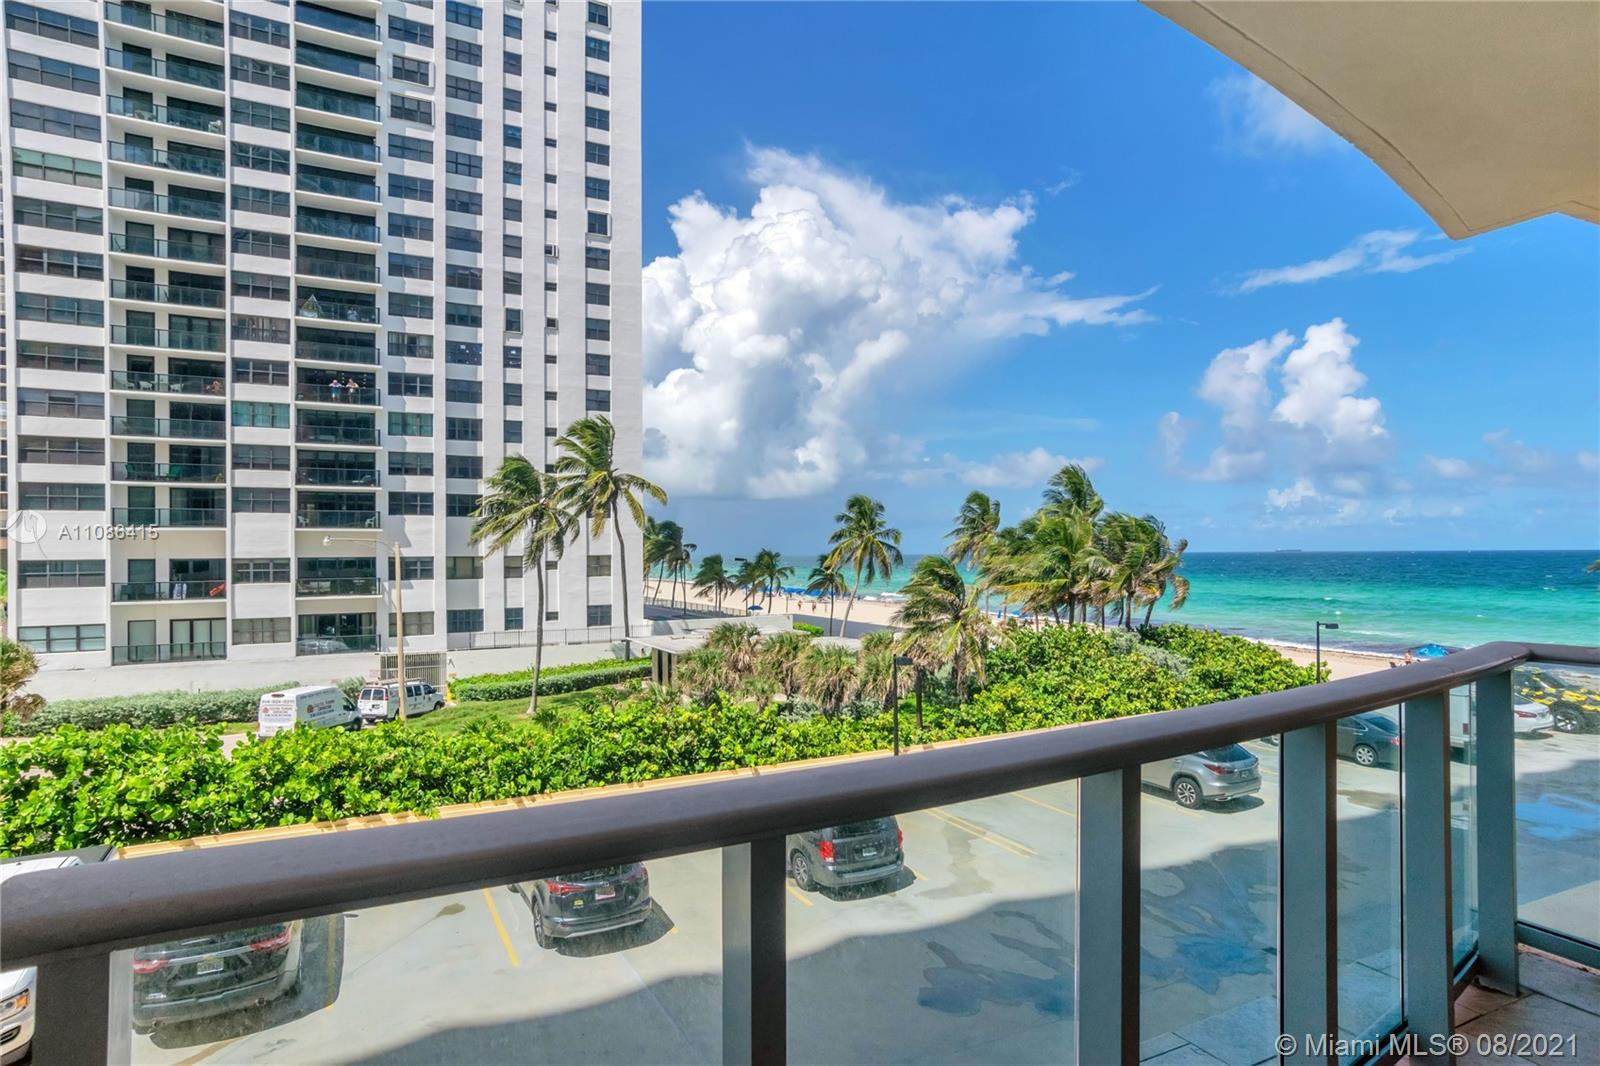 Fall in love with the view from your Private Balcony. Come live where others vacation at The Wave Co